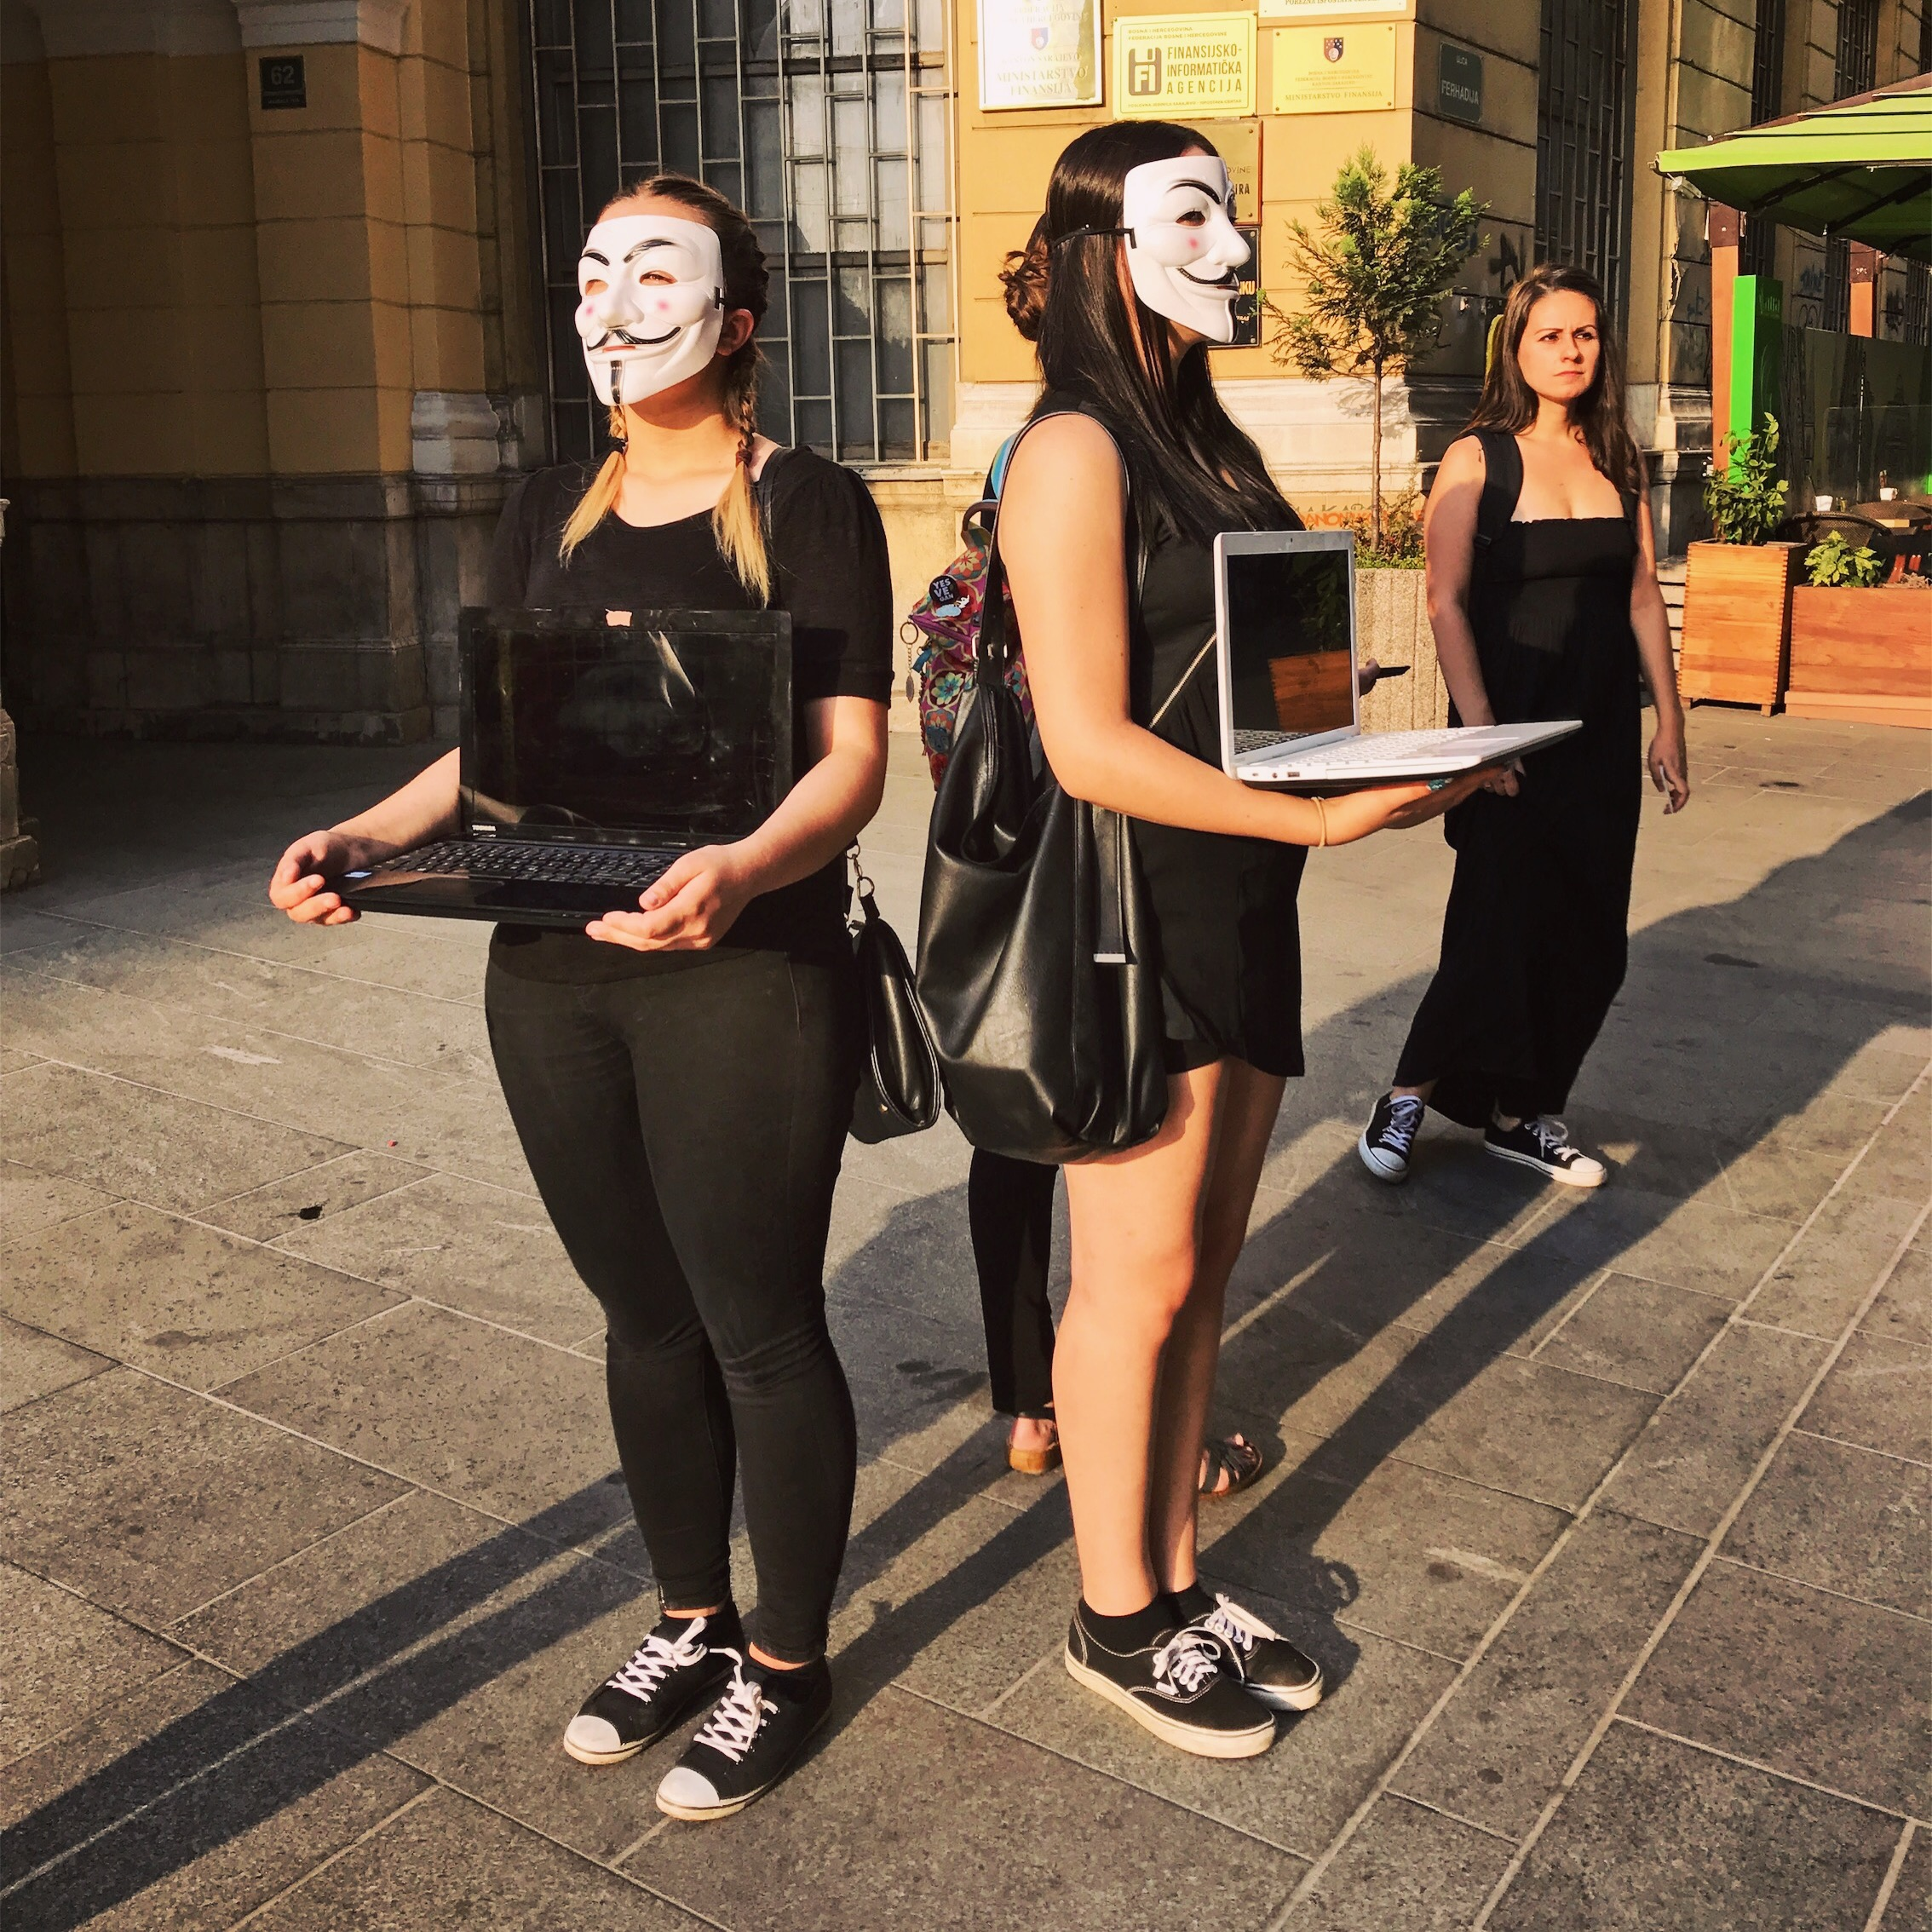 The Balkans is not the most most veg-friendly region I've traveled through. Yet it is where I've seen the most pro-vegetarian/vegan street art and performance, including these women, who where advocating animal rights ðŸ�'